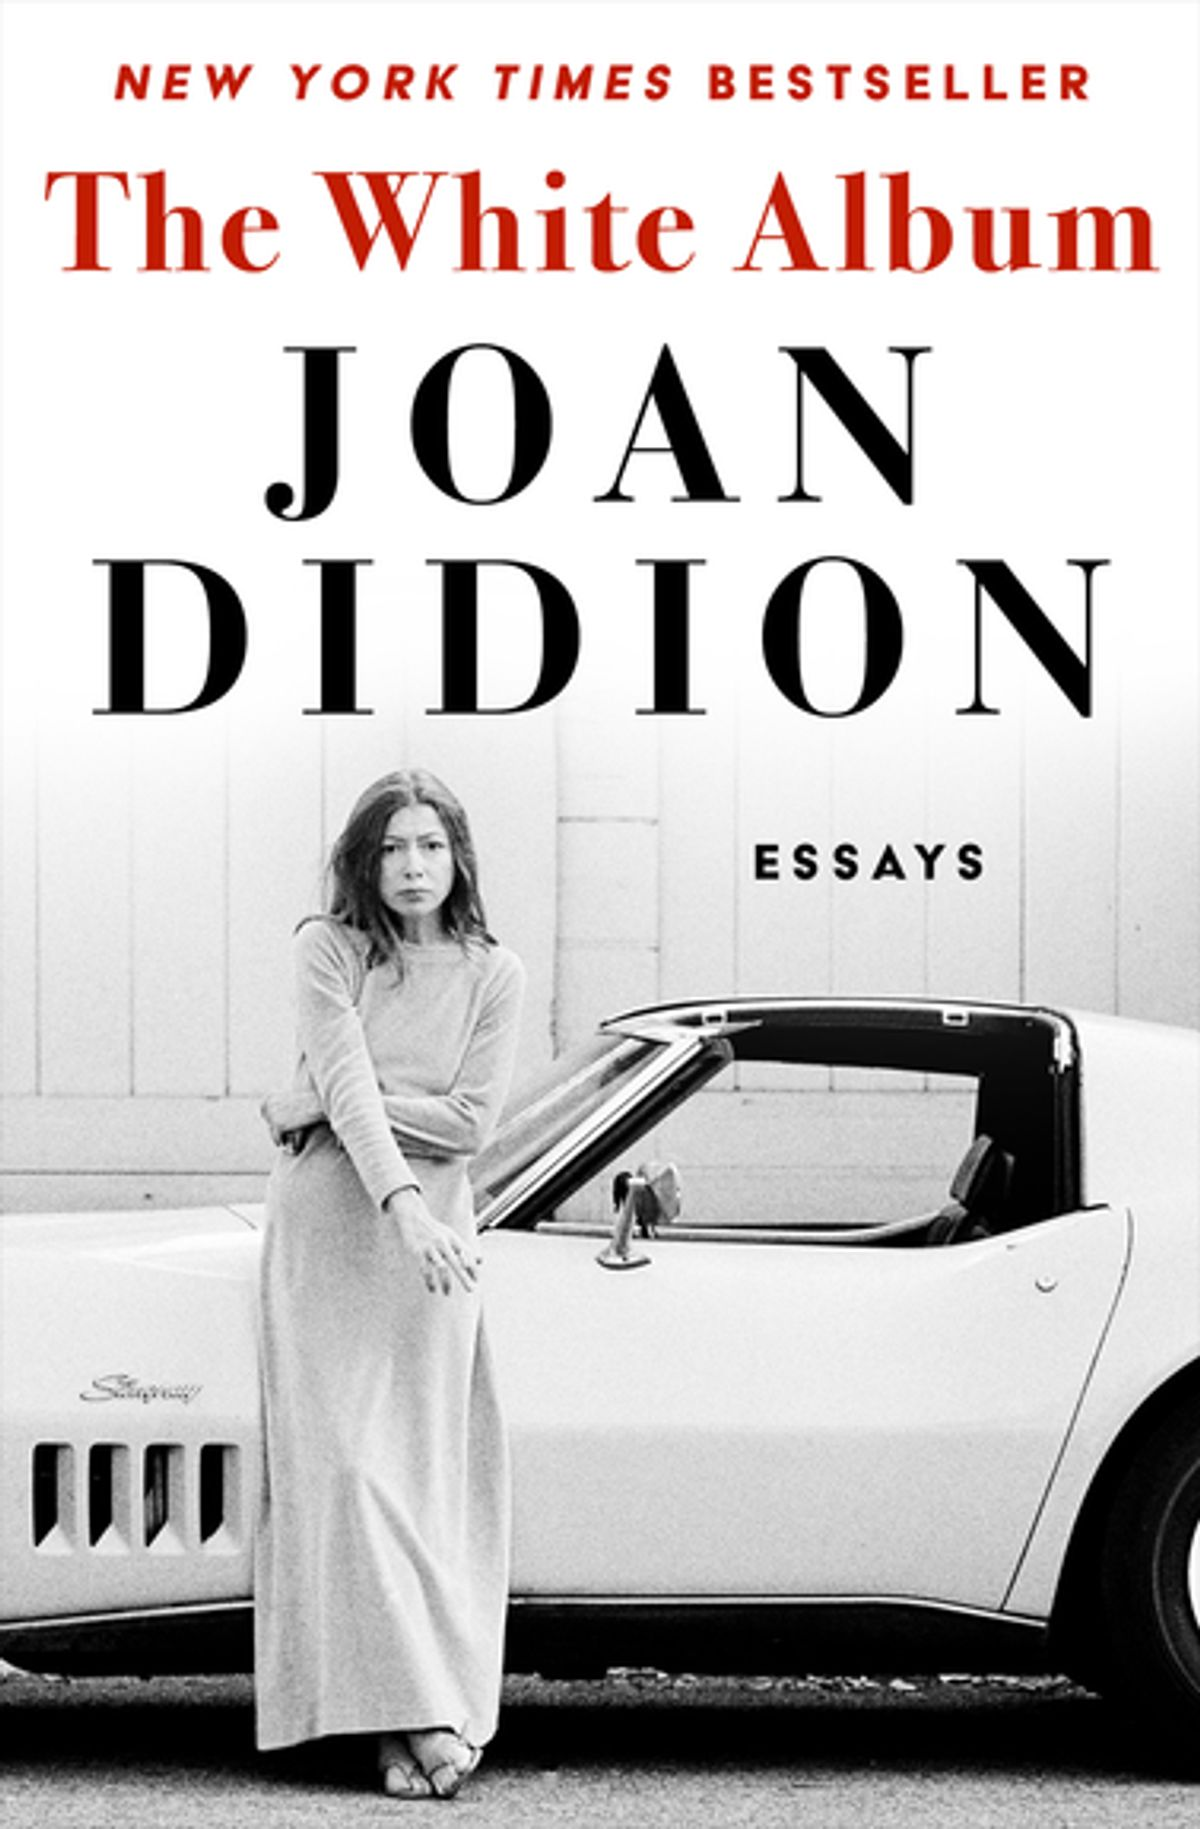 026 The White Album Essay Example Joan Didion Singular Essays On Santa Ana Winds Collections Full